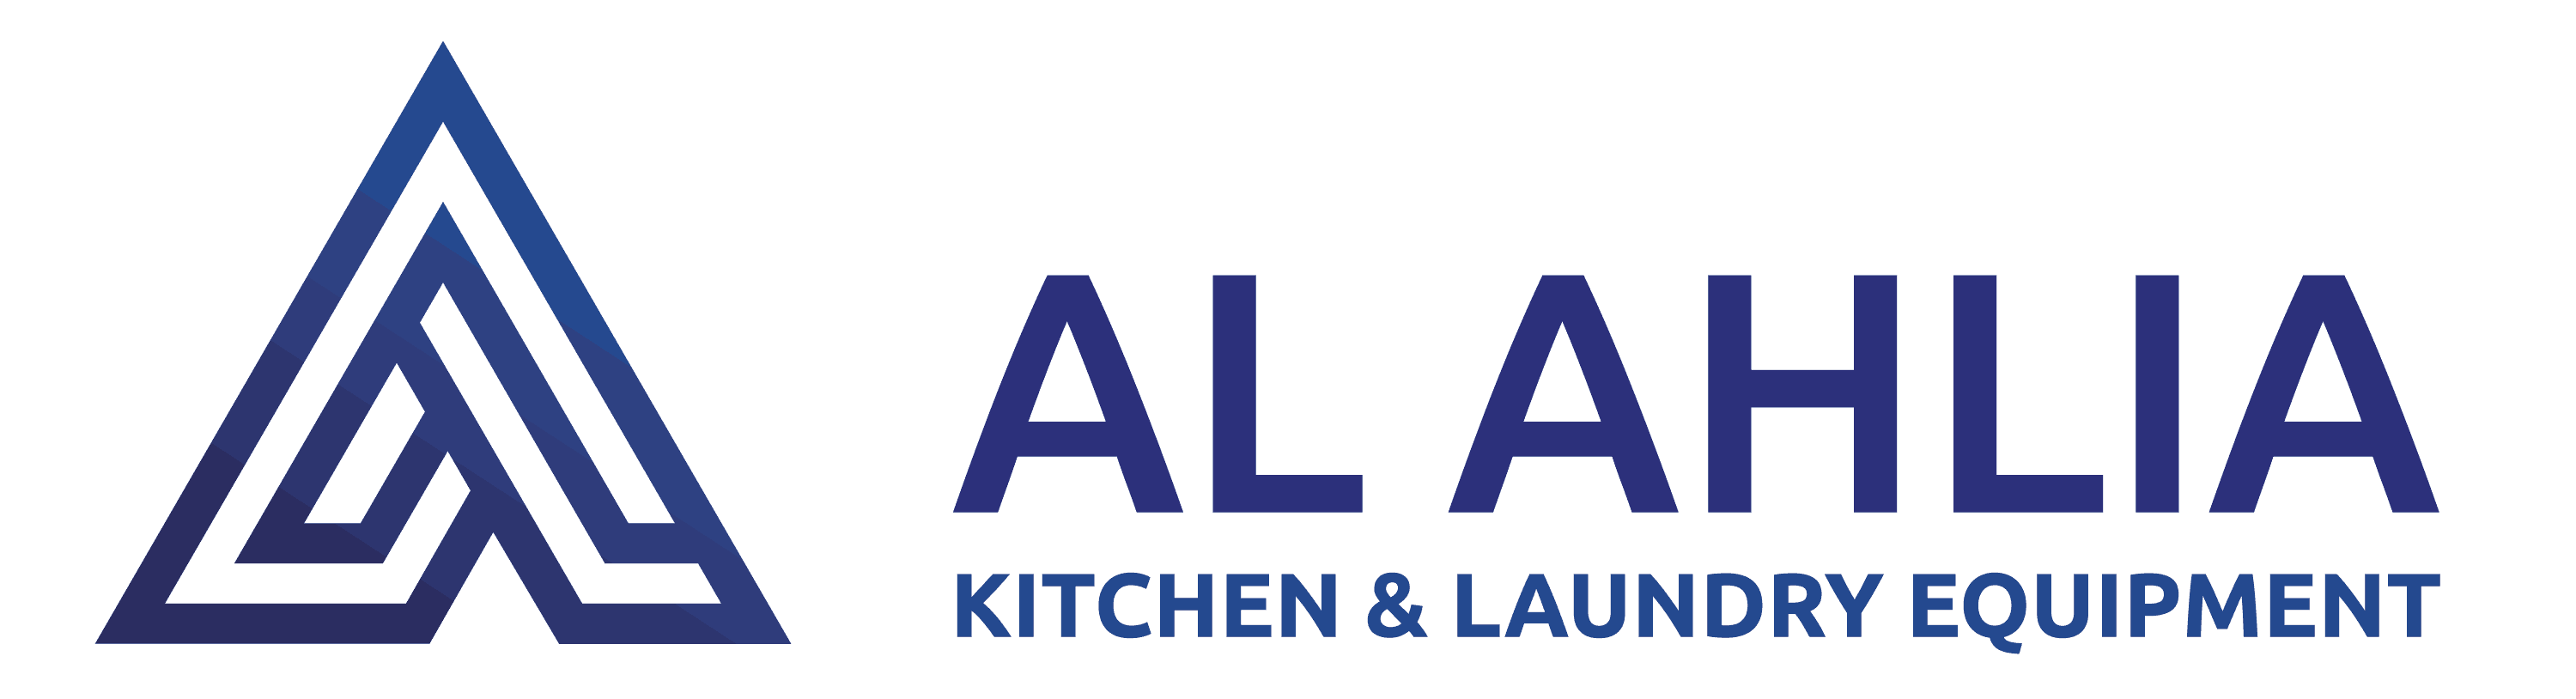 Kitchen & Laundry Equipment